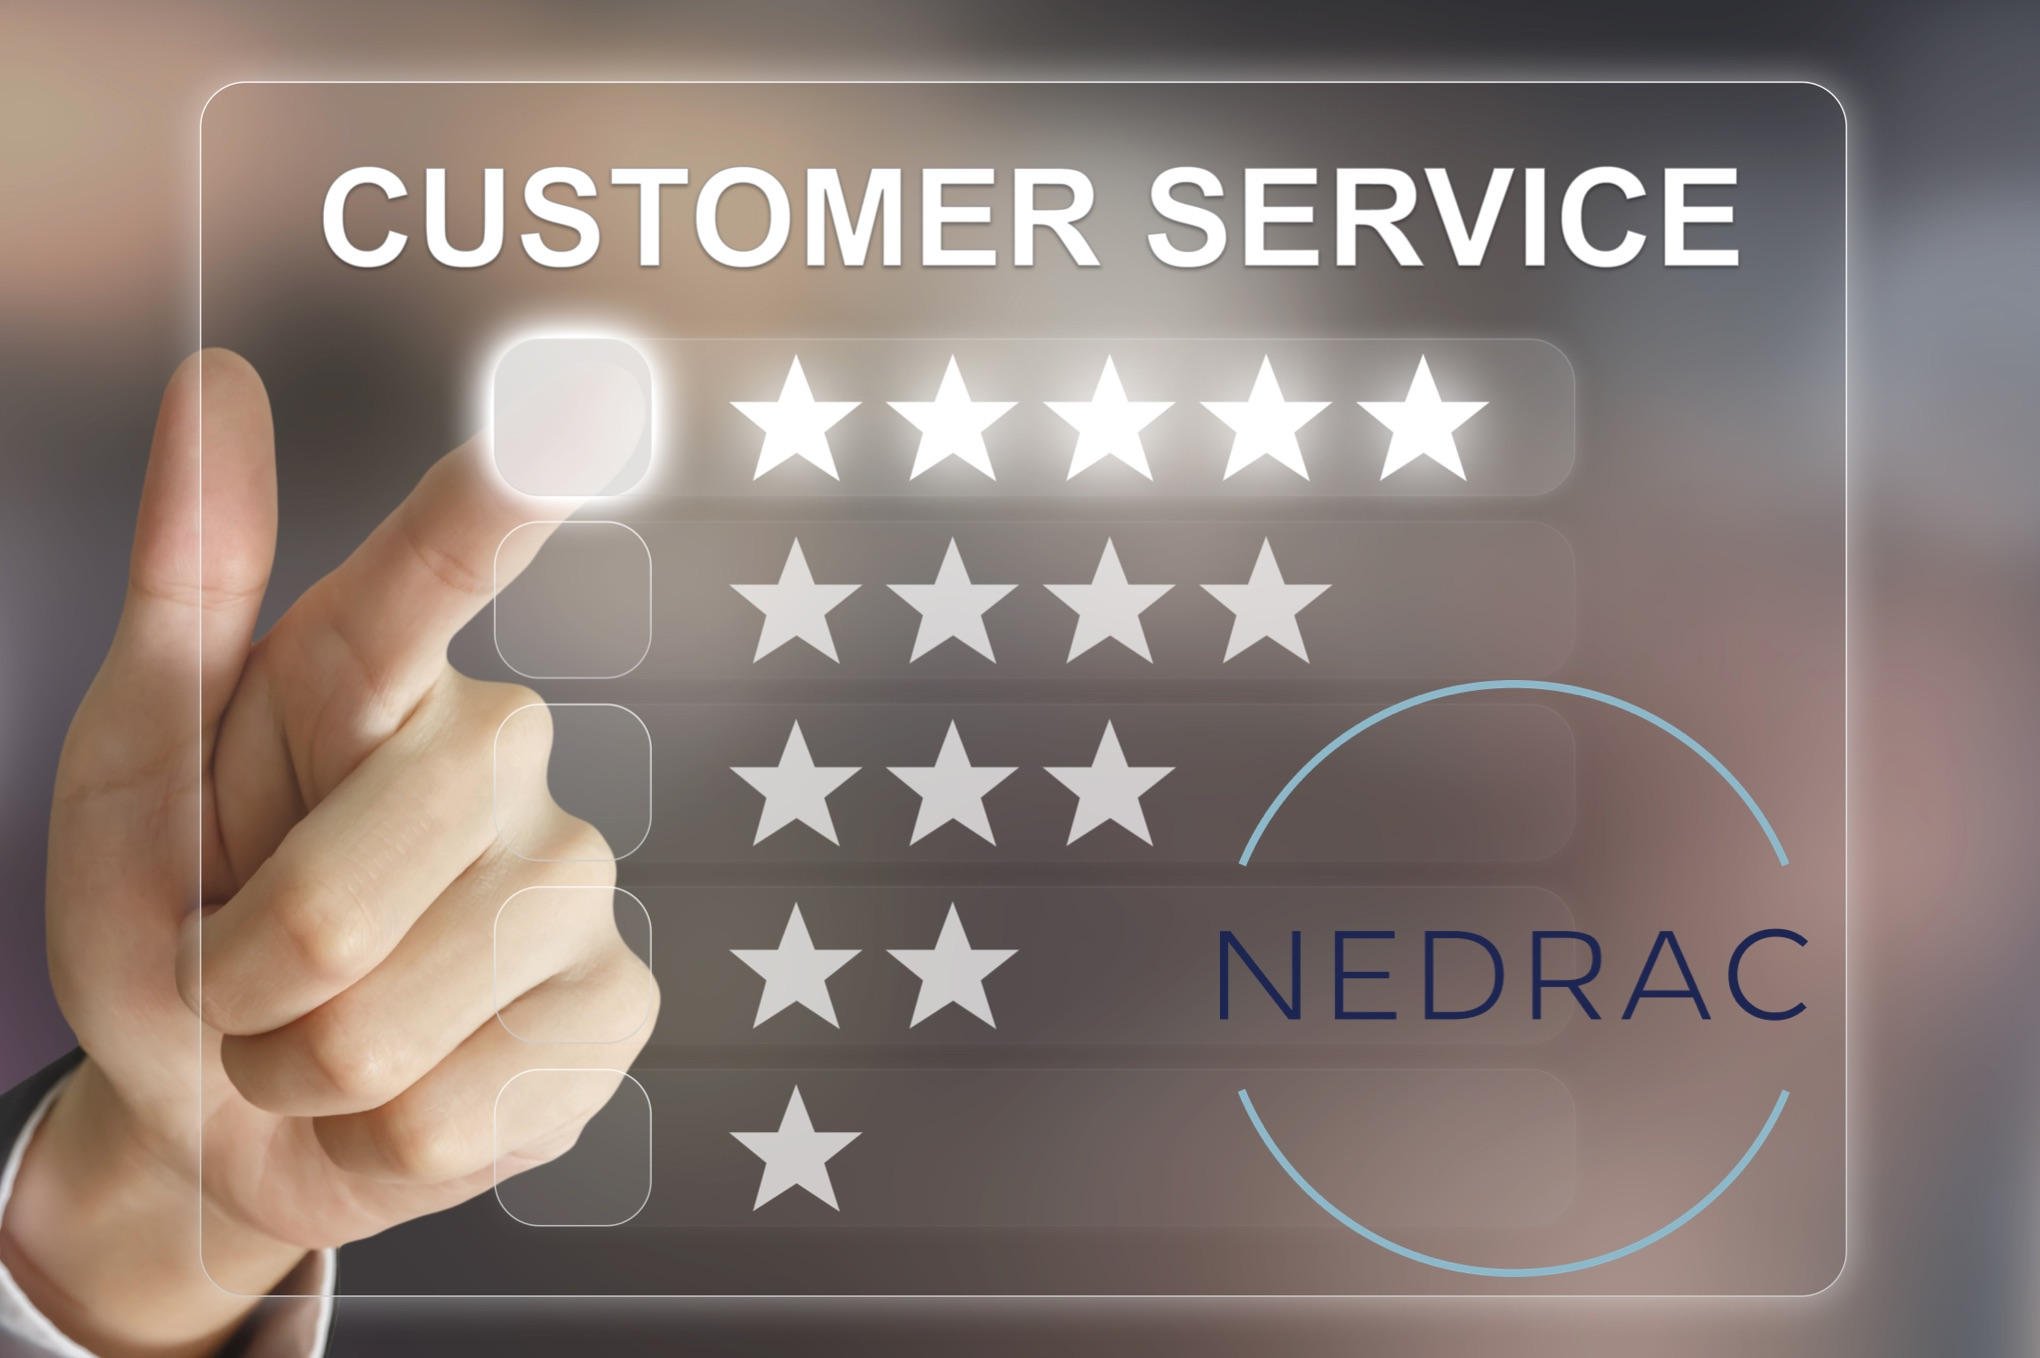 NEDRAC Loves Getting Client Feedback and Reviews.- NEDRAC - Your Shipping Choice for Your Next Move